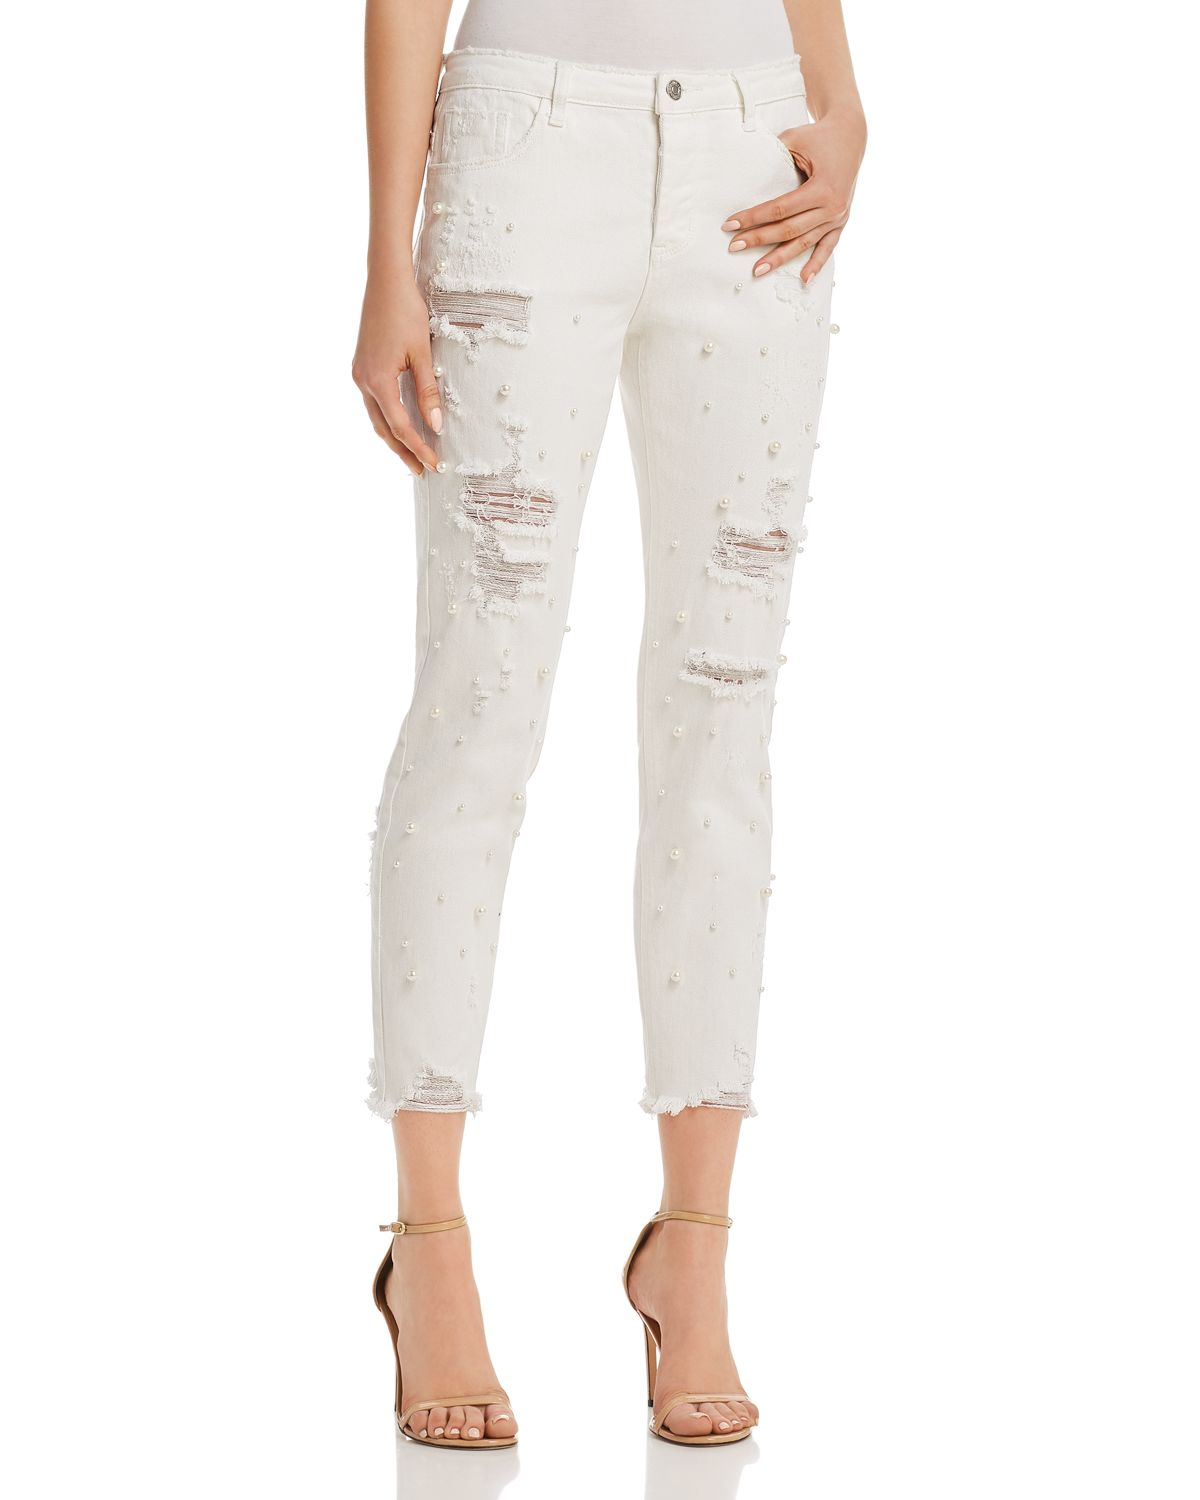 Embellished Distressed Straight Leg Jeans In White   100 Percents Exclusive  by Sunset & Spring